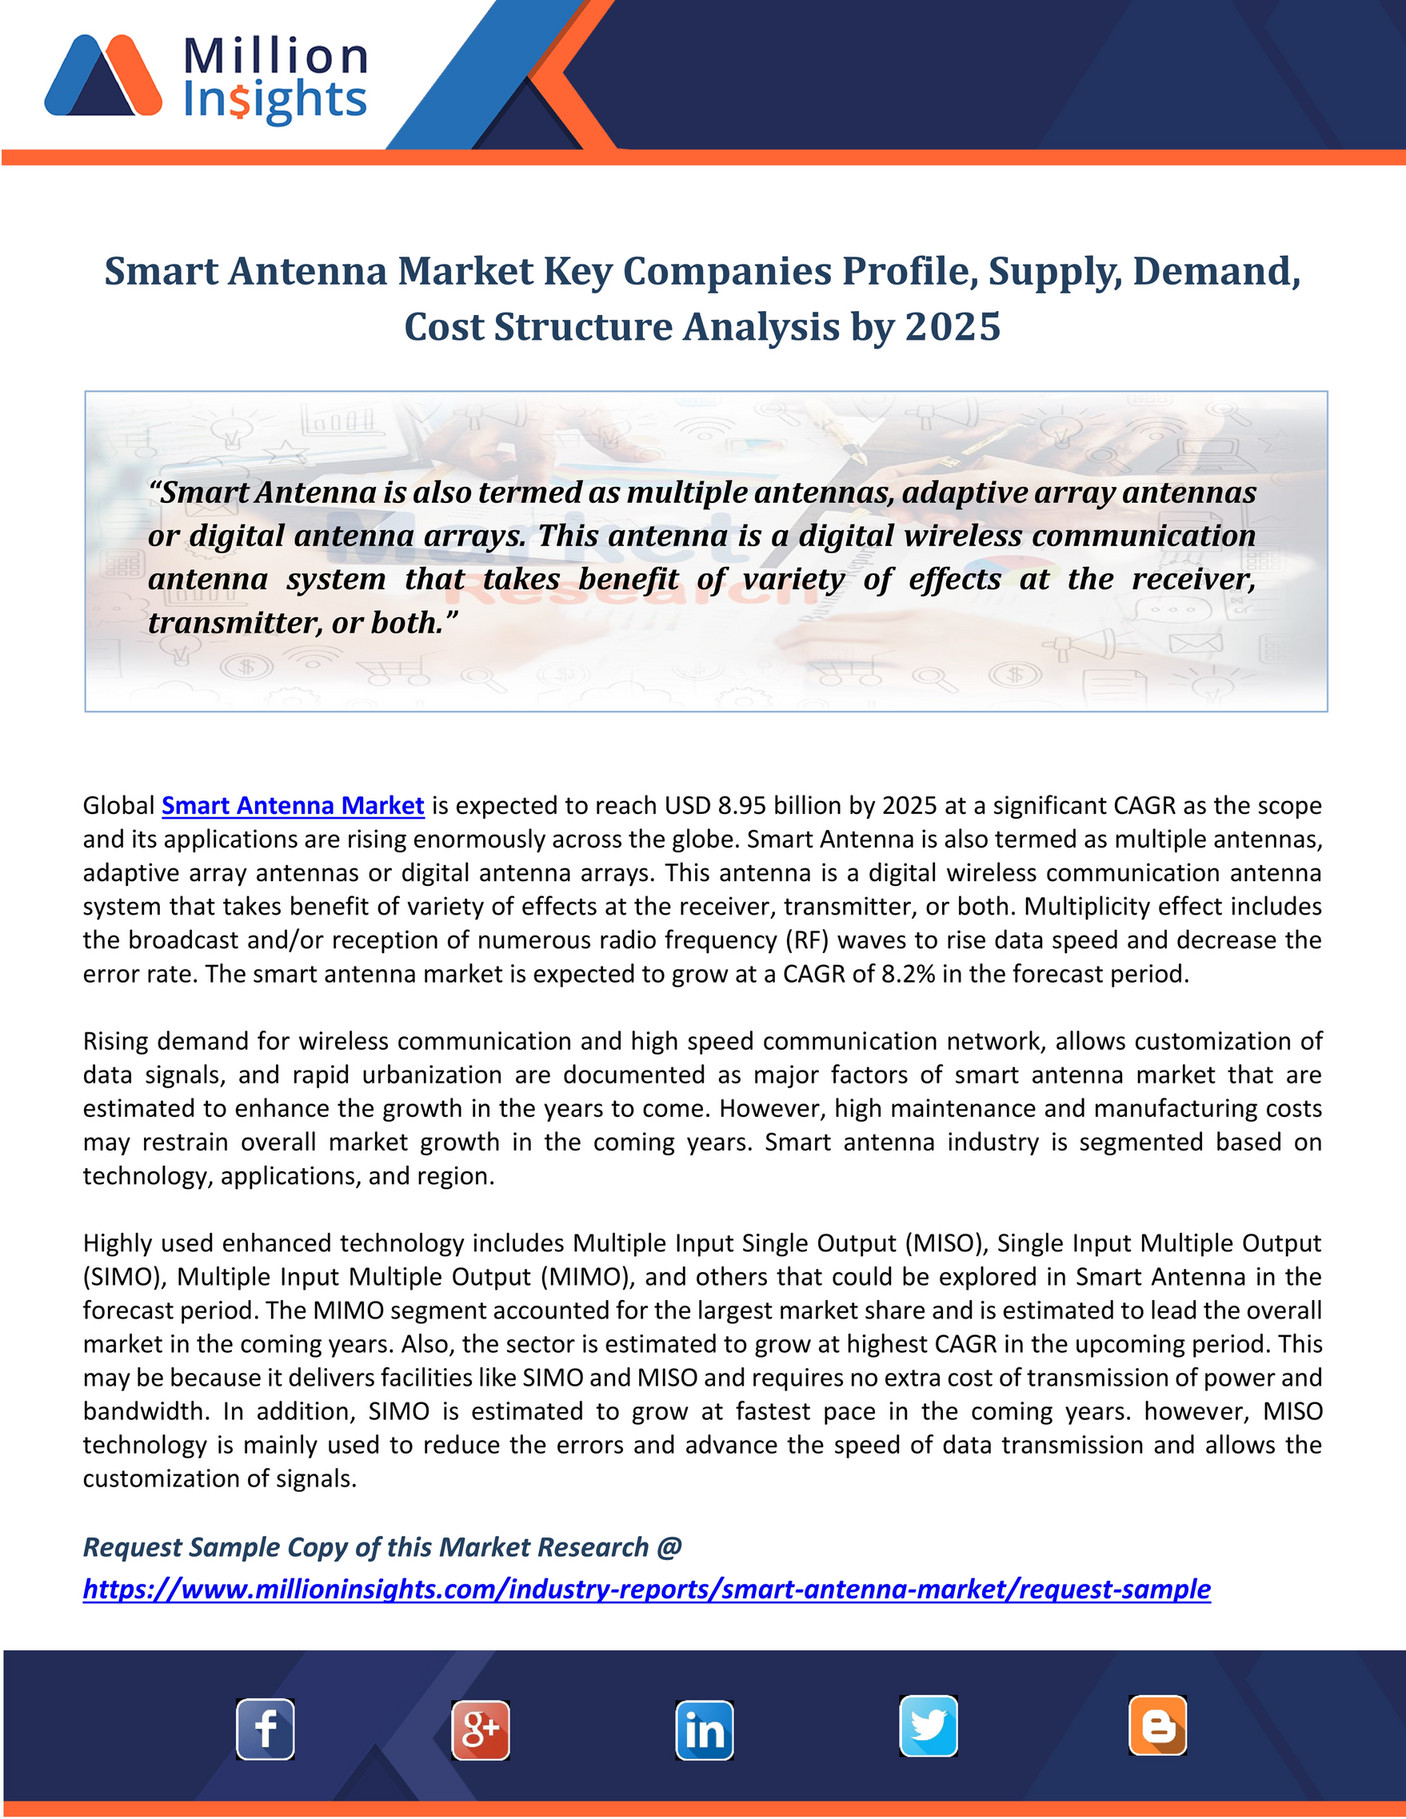 Smart Antenna Market Antennas Million Insights Key Companies Profile Supply Demand Cost Structure Analysis Page Created With